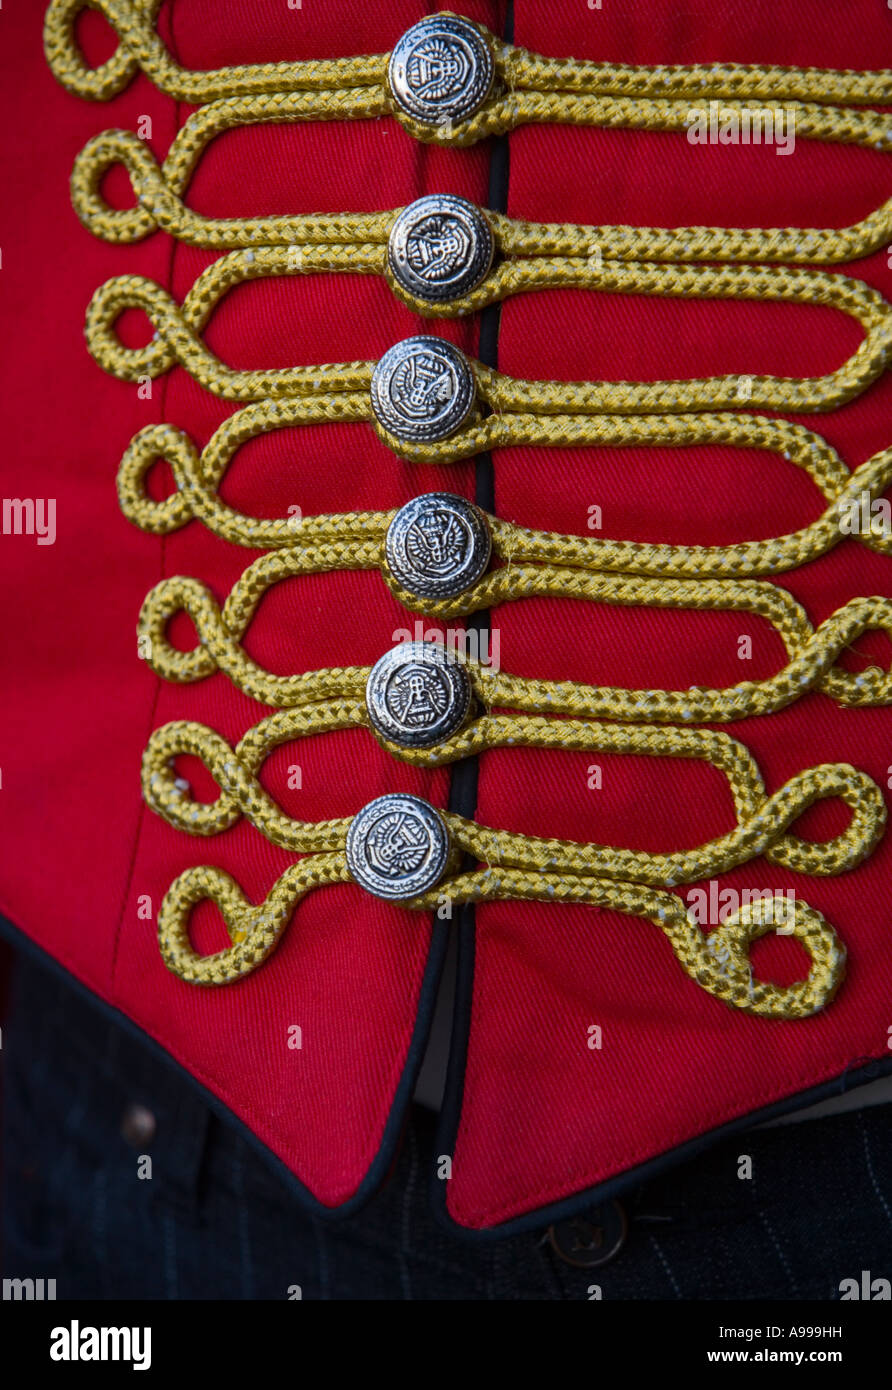 Bright red uniform with gold braid in shop in Camden Market, London - Stock Image